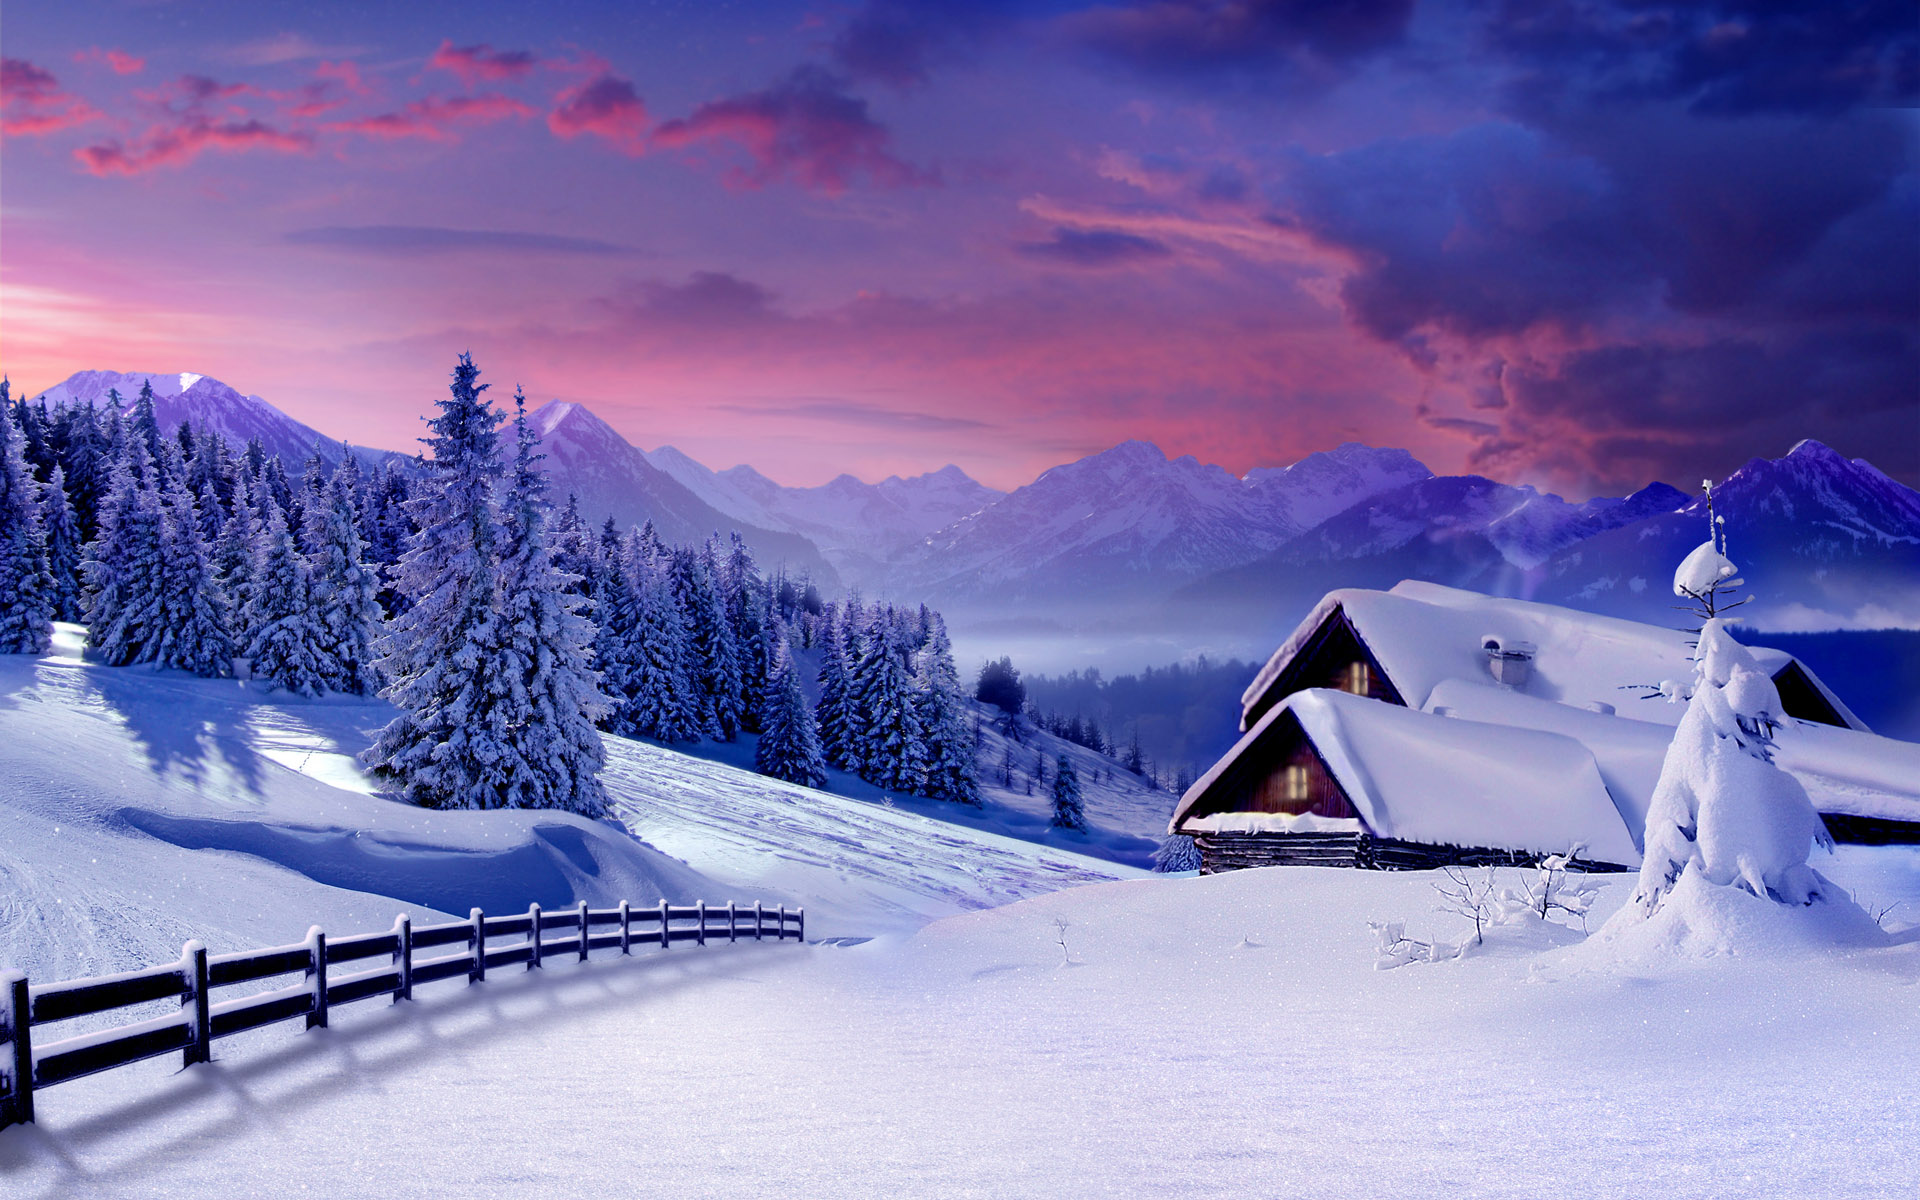 Widescreen Wallpaper Winter Wallpaper